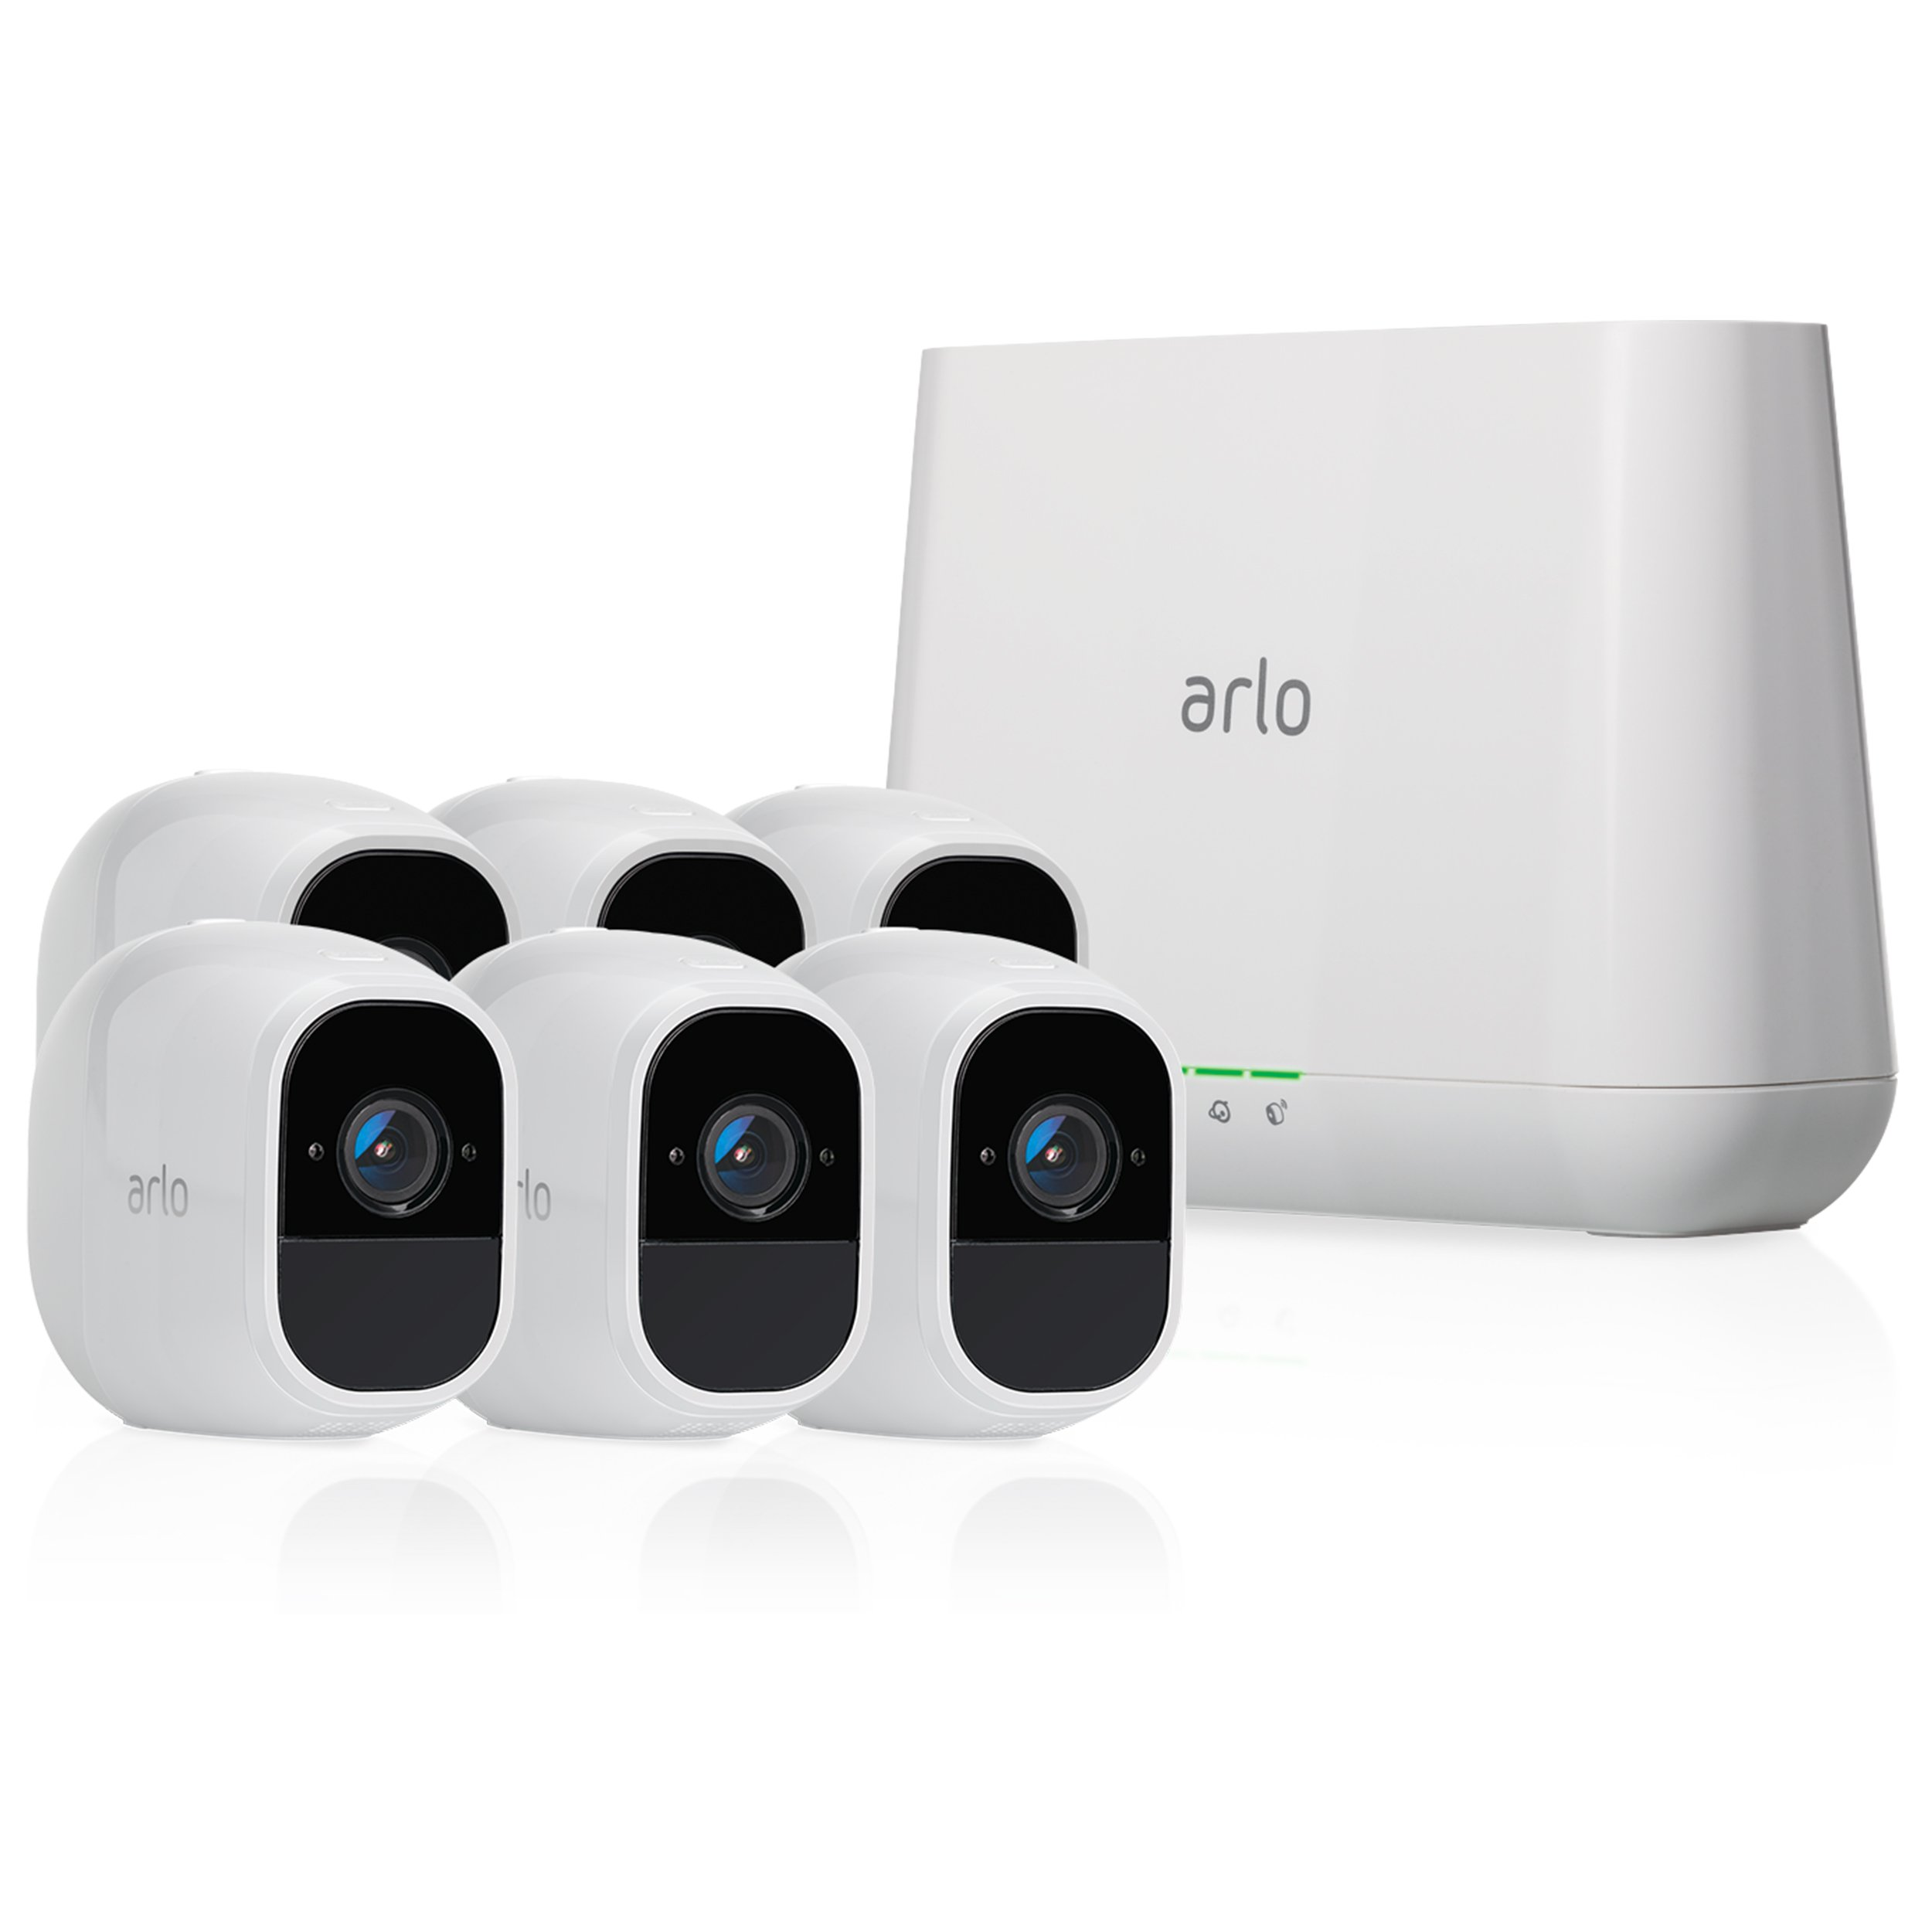 Arlo Pro 2 by NETGEAR Home Security Camera System (6 pack) with Siren, Wireless, Rechargeable, 1080p HD, Audio, Indoor or Outdoor, Night Vision, Works with Amazon Alexa (VMS4630P)